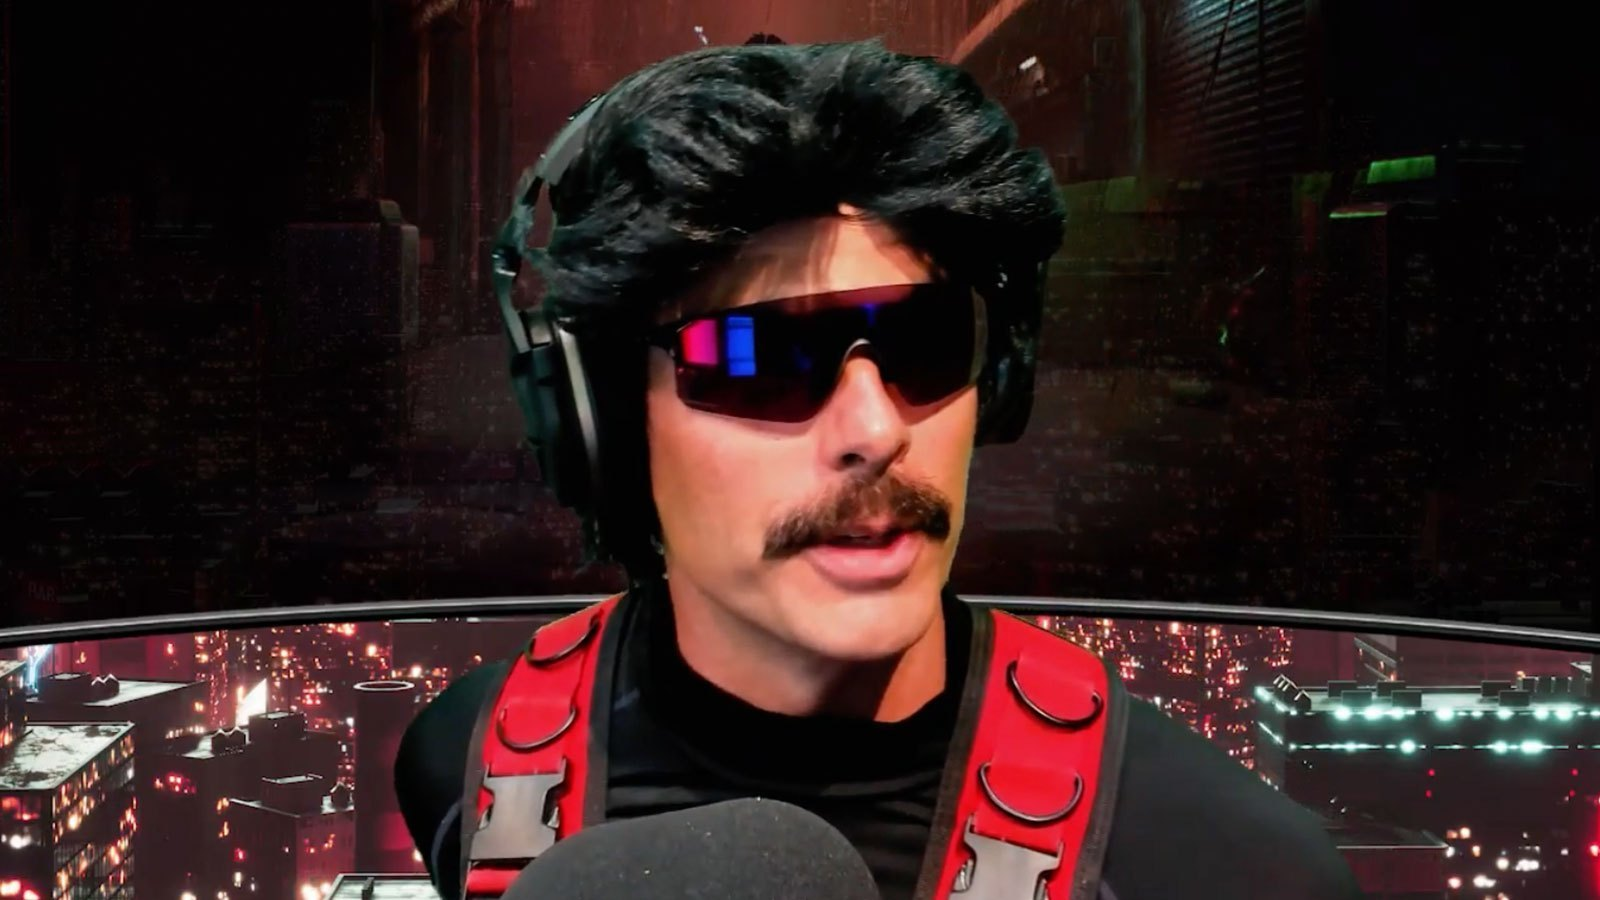 Dr Disrespect and Shroud both returned to streaming within a week of each other.